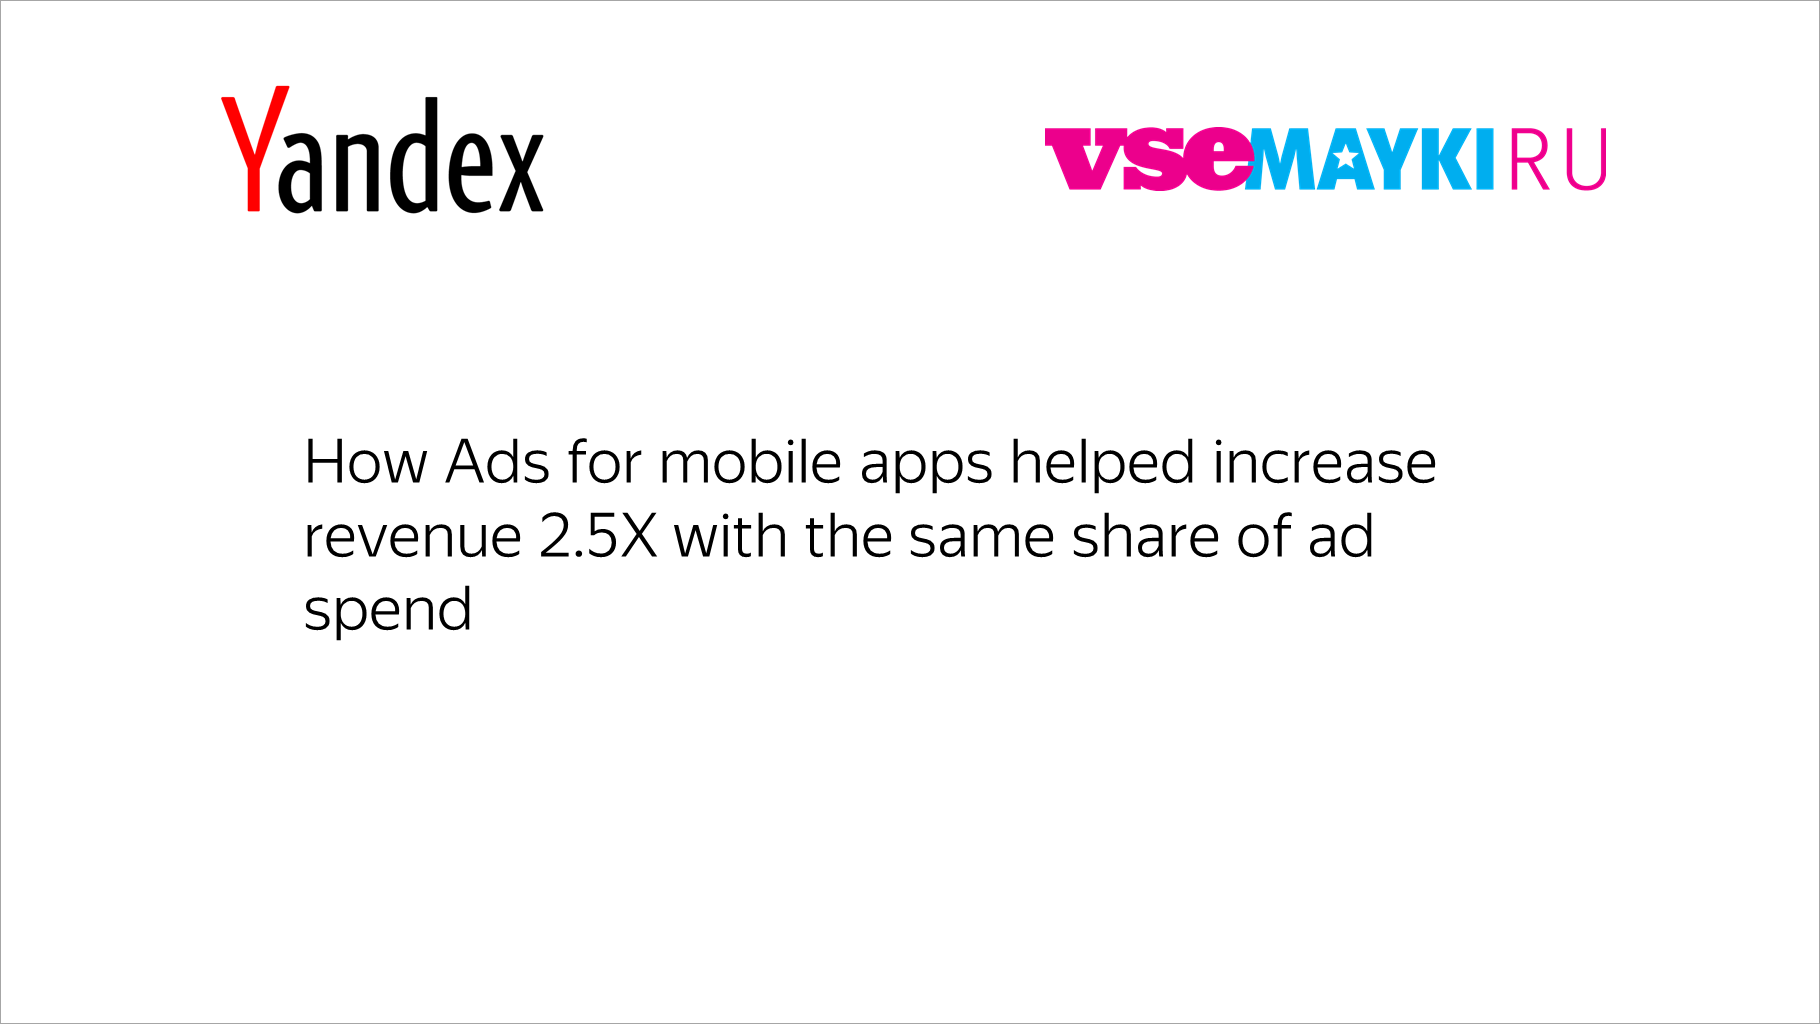 How Ads for mobile apps helped increase revenue 2.5X with the same share of ad spend